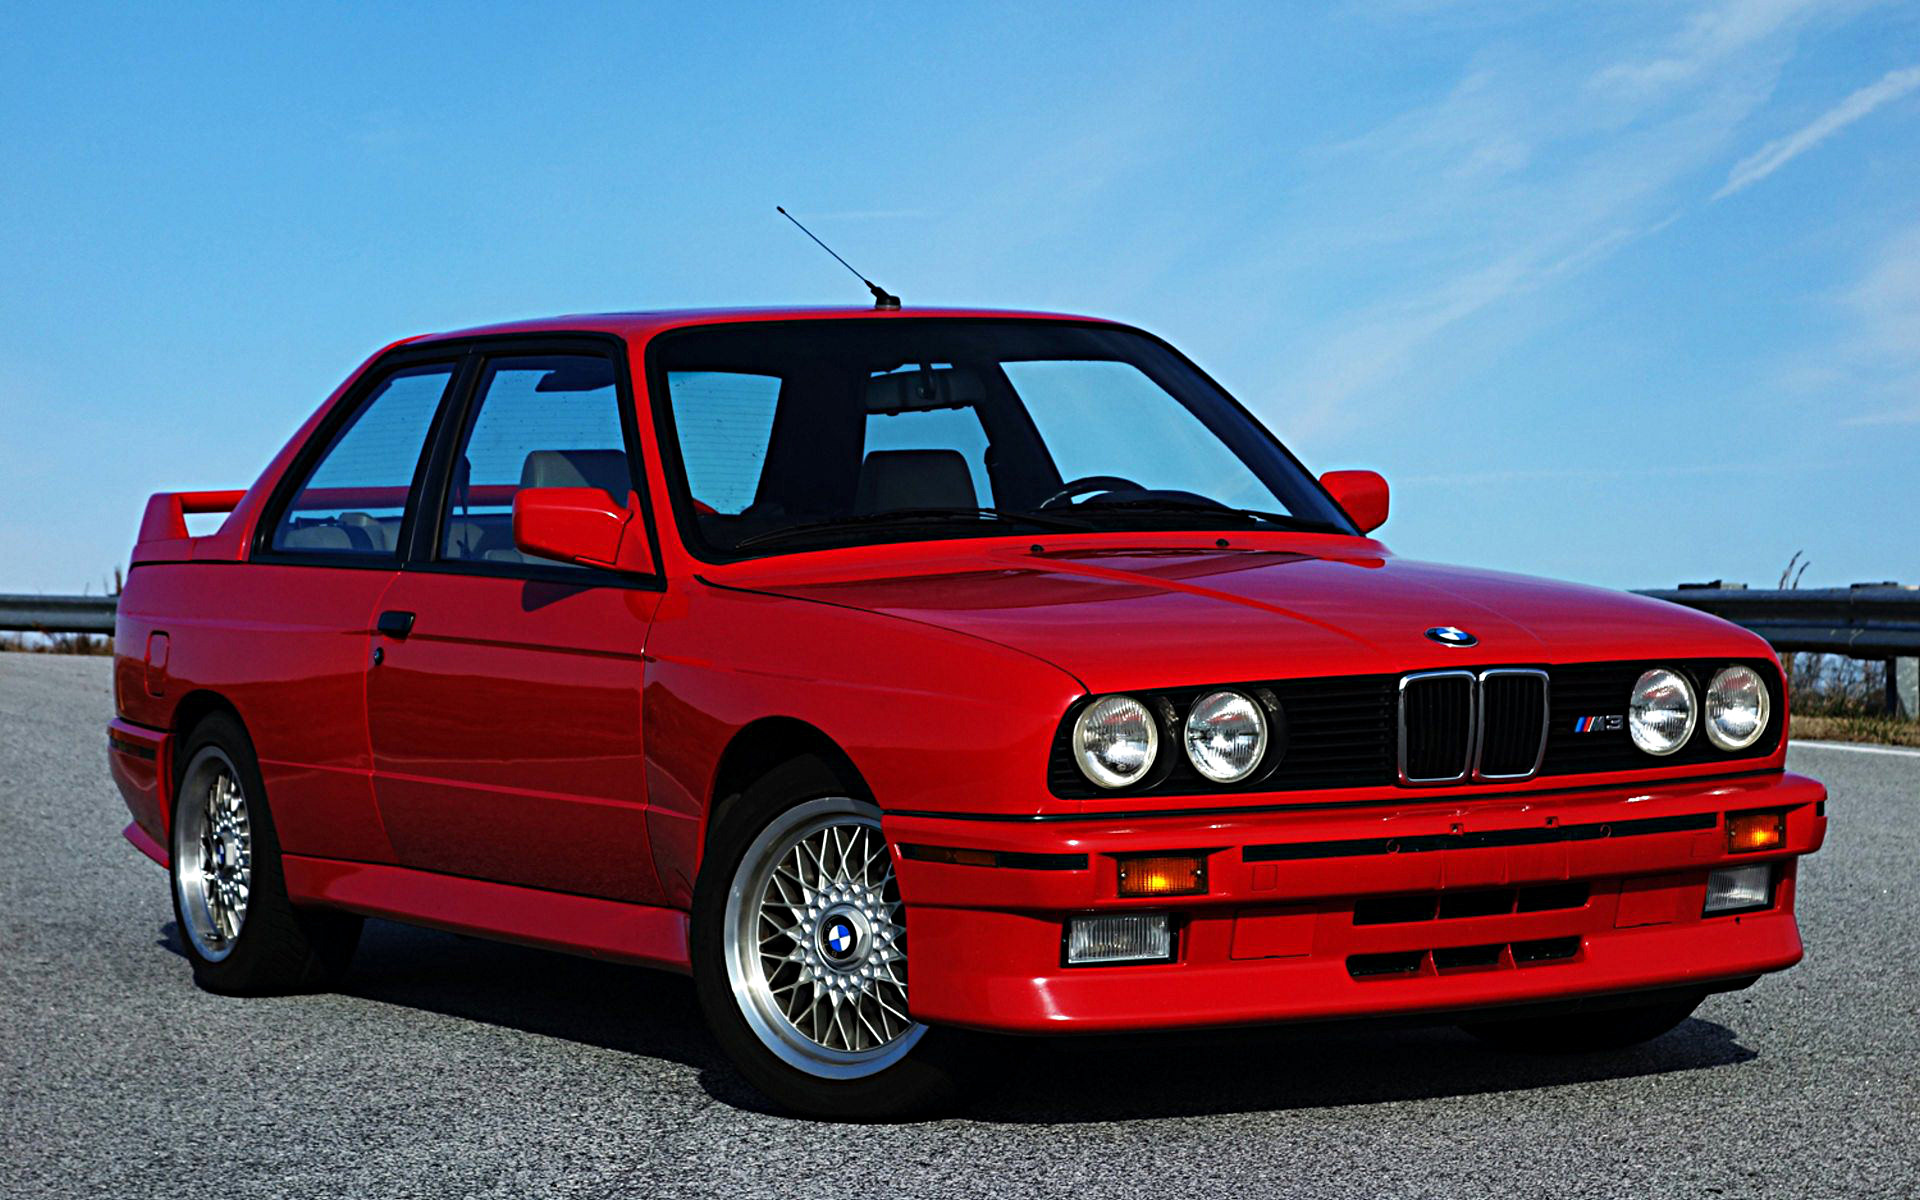 kane blog picz bmw e30 wallpaper m3. Black Bedroom Furniture Sets. Home Design Ideas